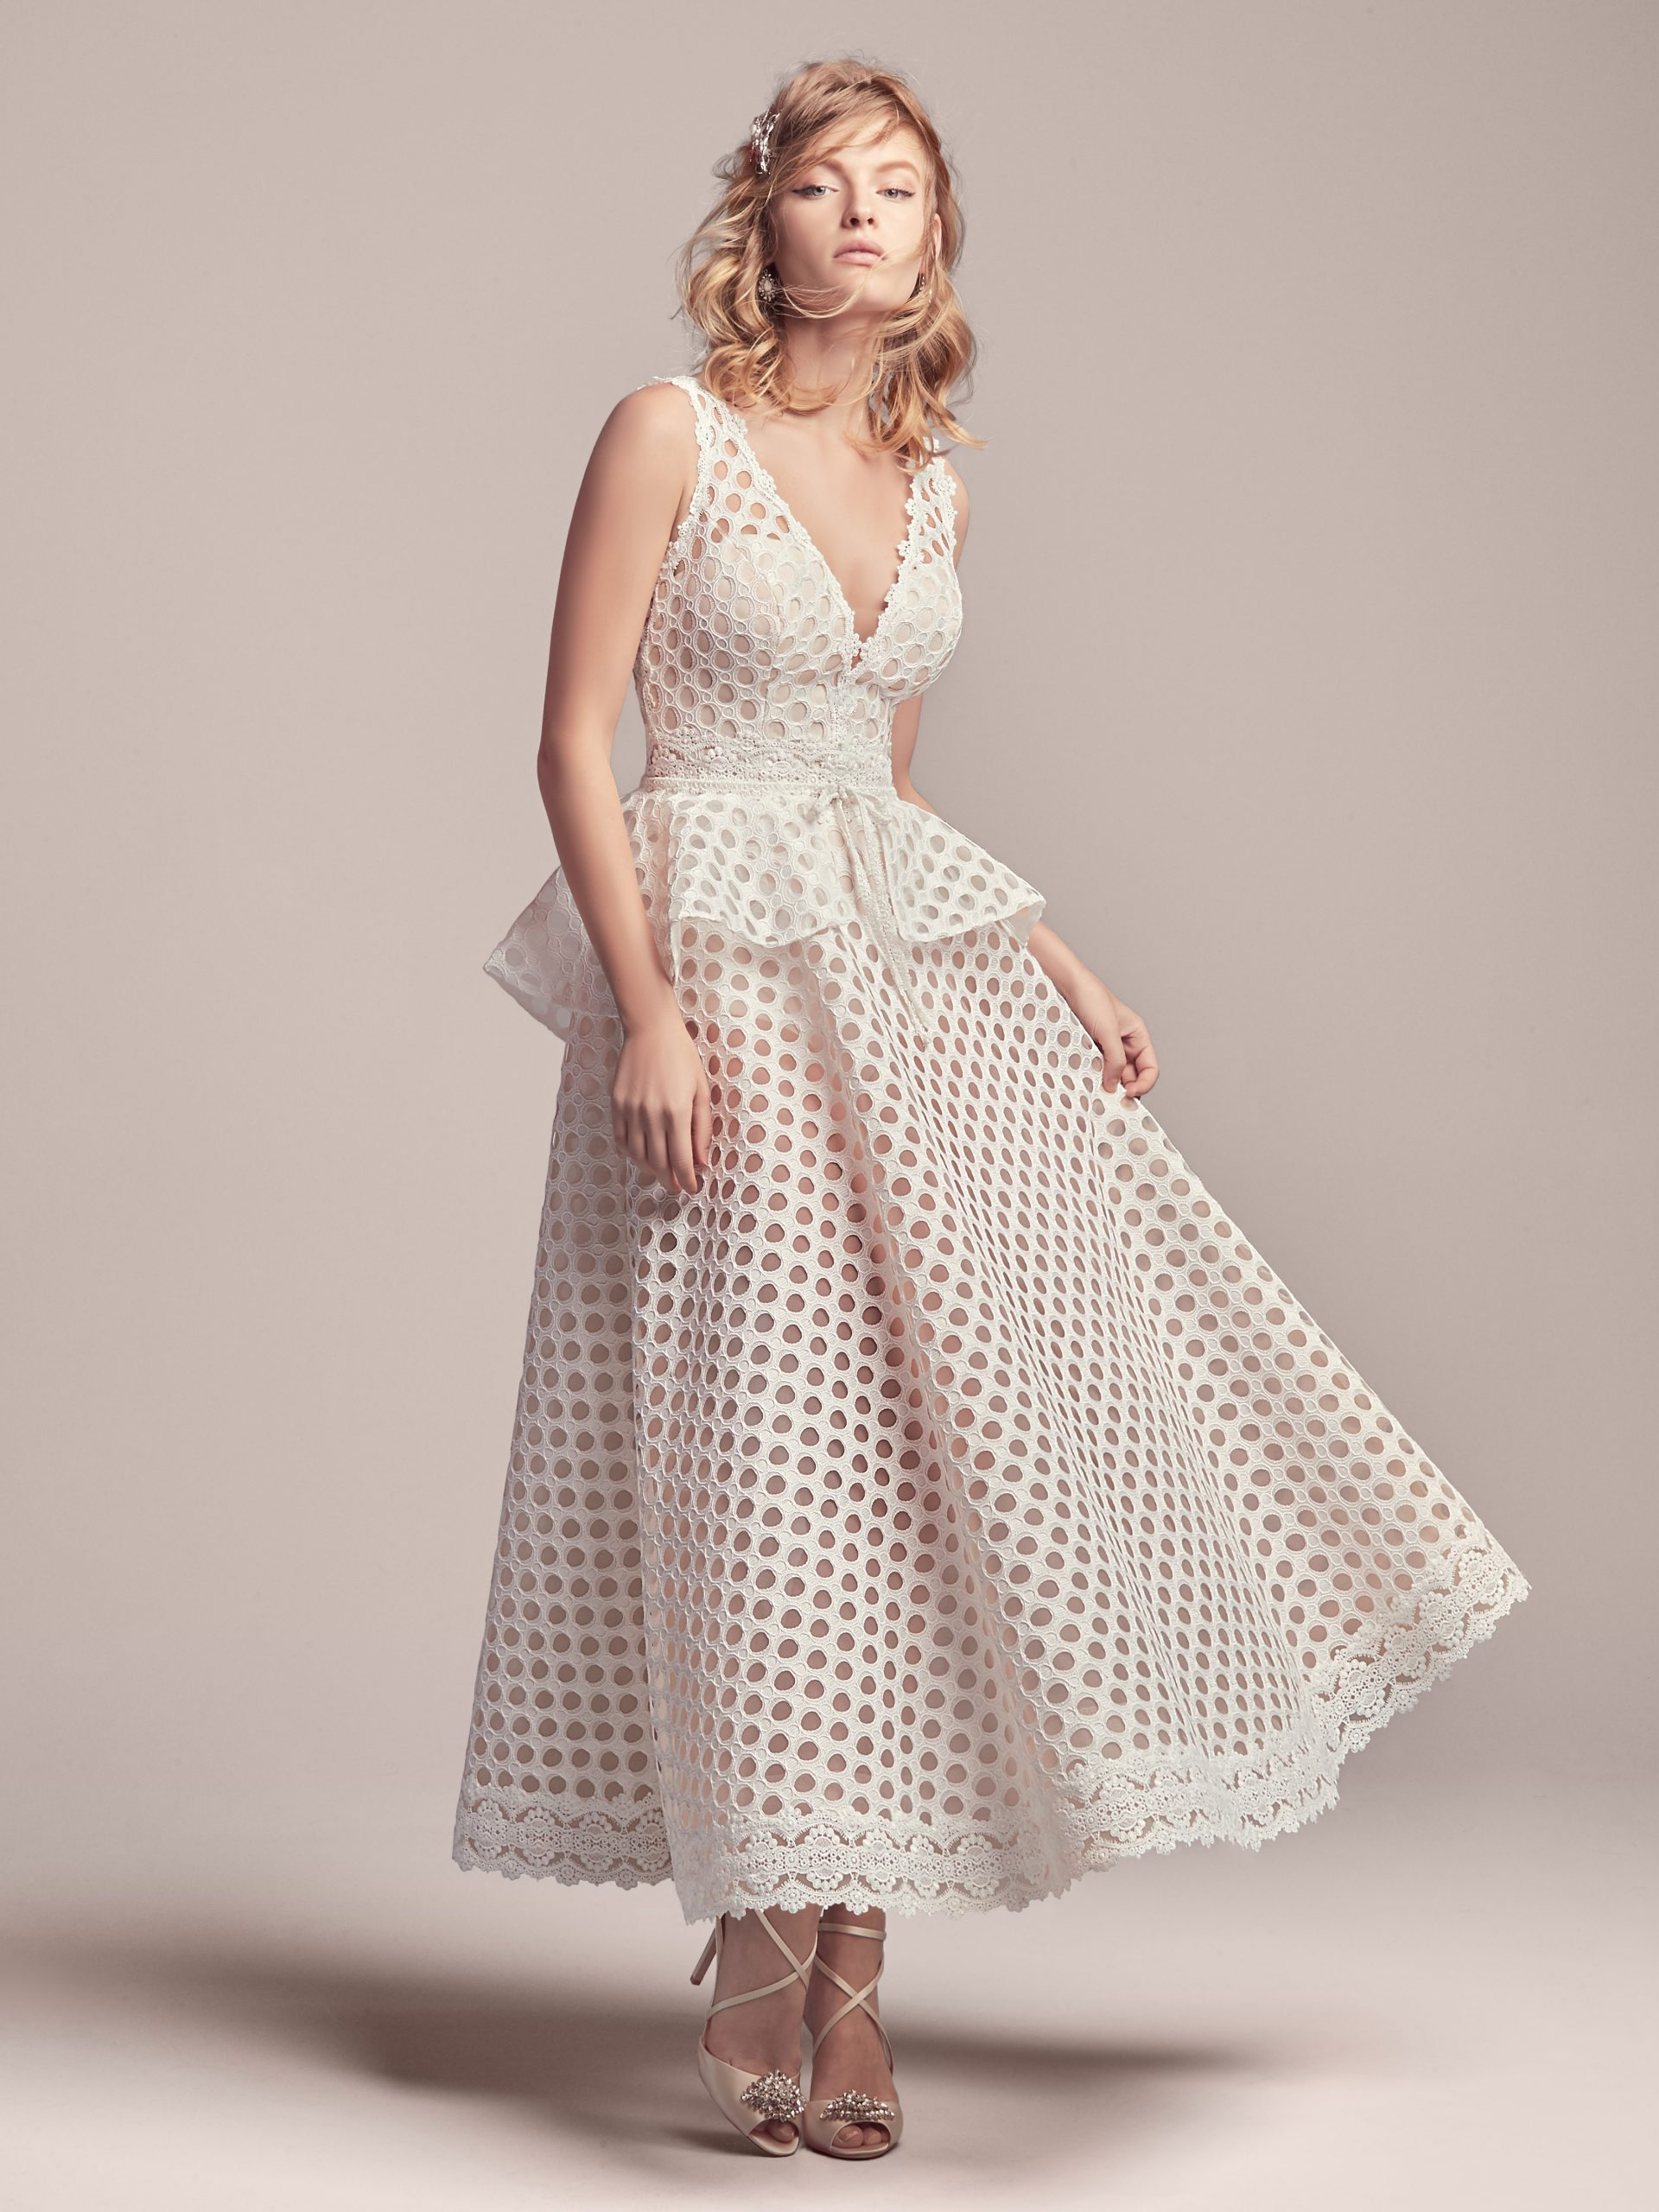 Unique Retro Wedding Dress Called Reggie by Rebecca Ingram